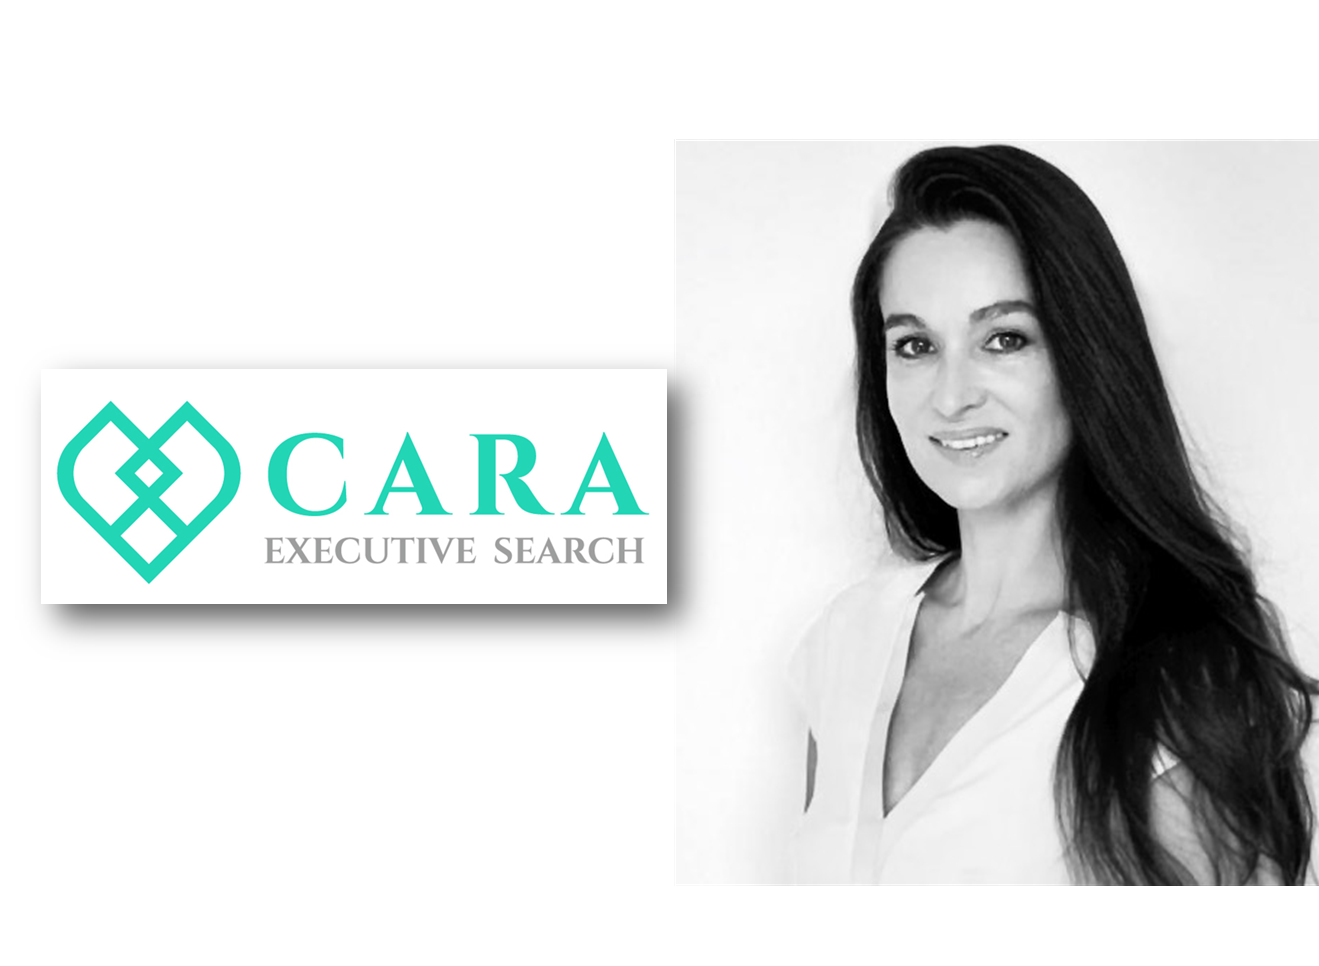 Careful Crafting of Job Descriptions is Key to Success for Cara Executive Search